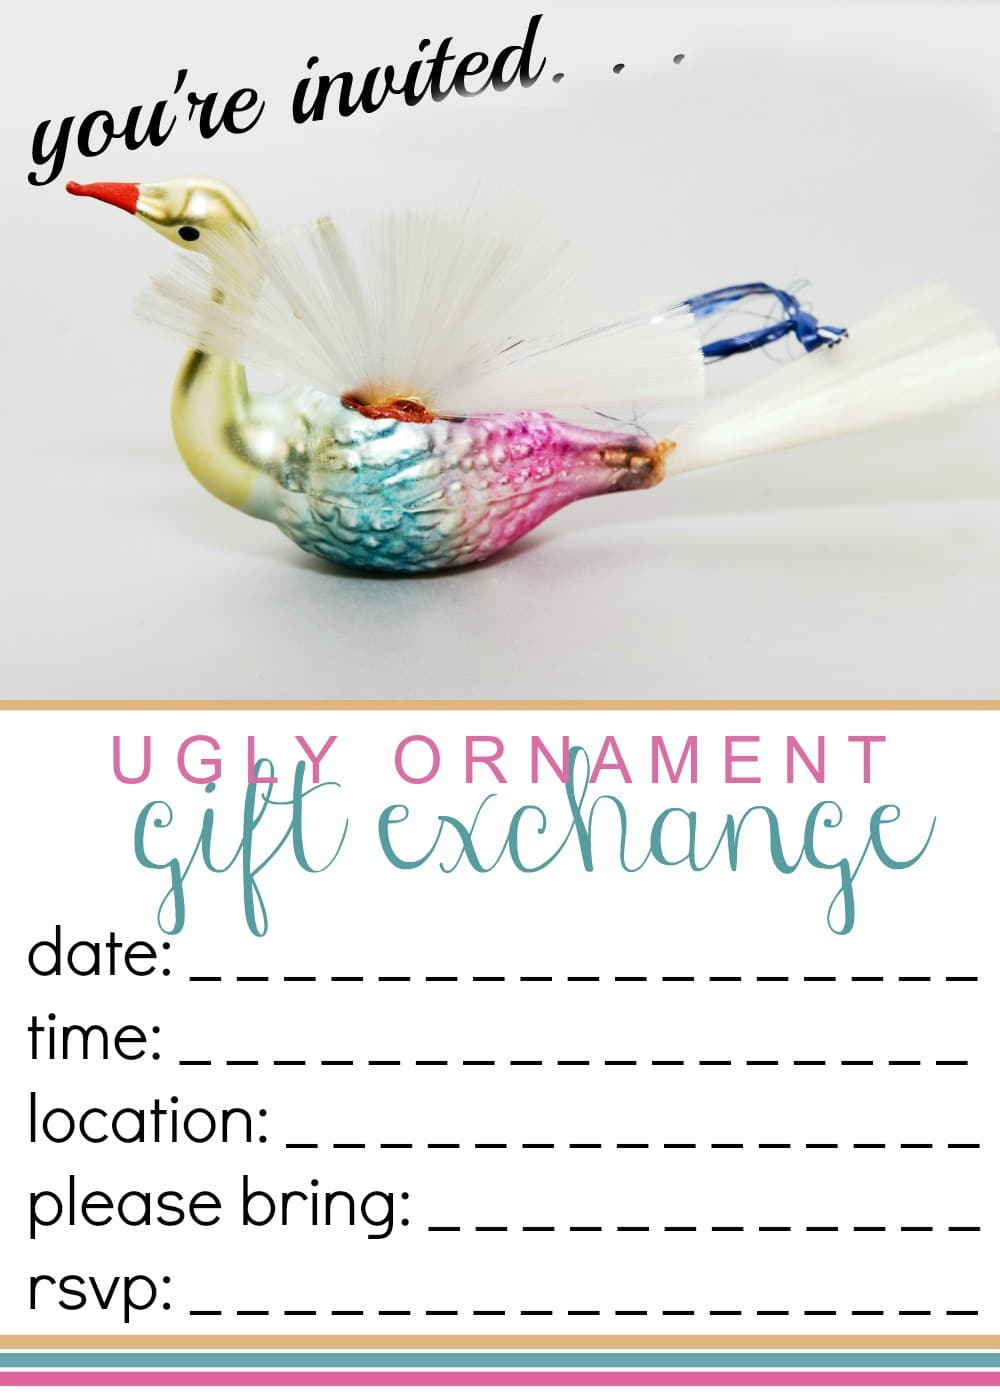 ugly ornament gift exchange invite